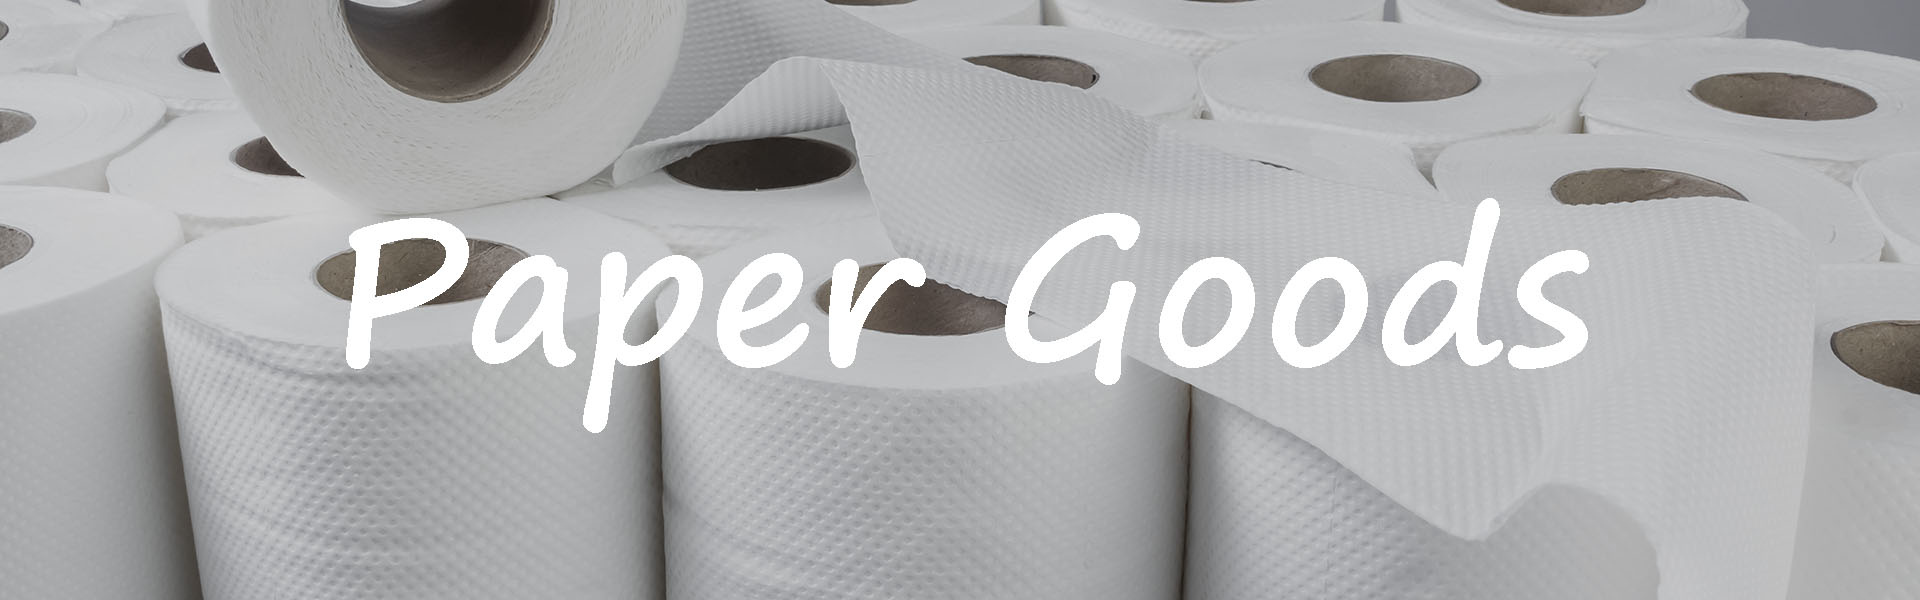 web-ready-paper-goods-1